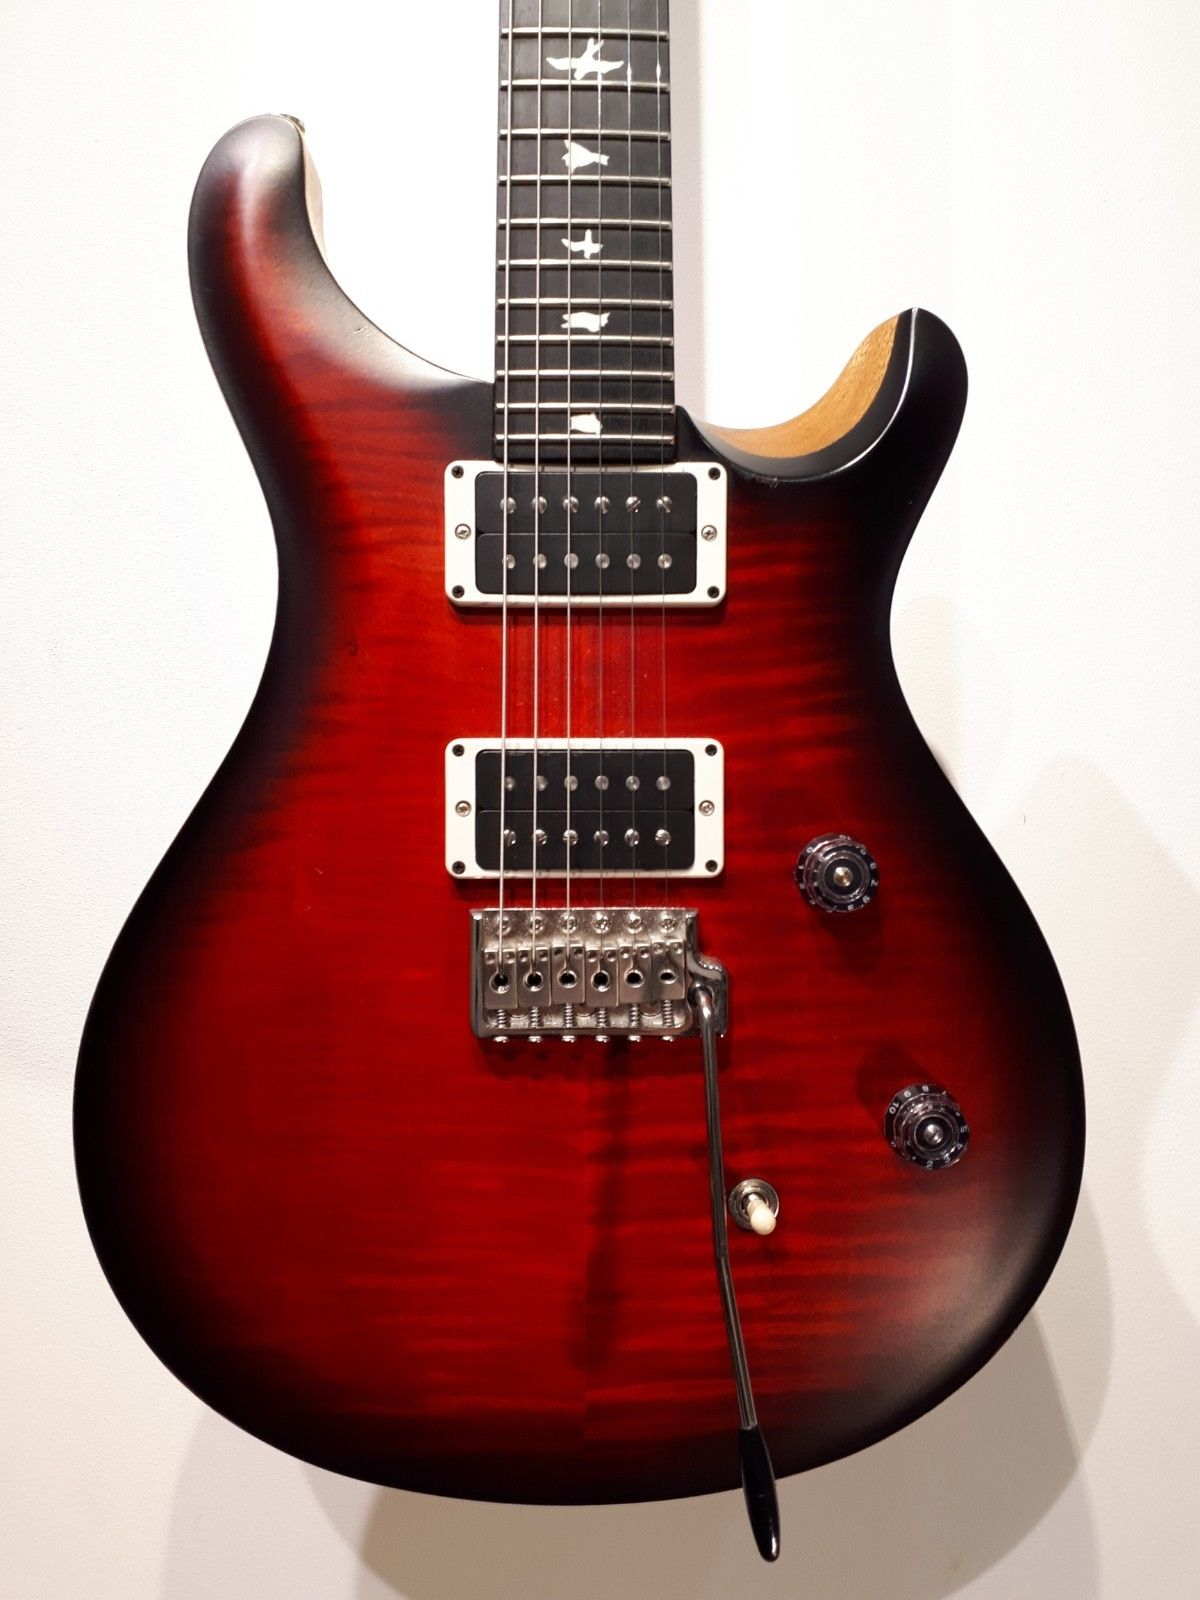 prs paul reed smith ce 24 usa made guitar fire red 2017 used guitar mania. Black Bedroom Furniture Sets. Home Design Ideas